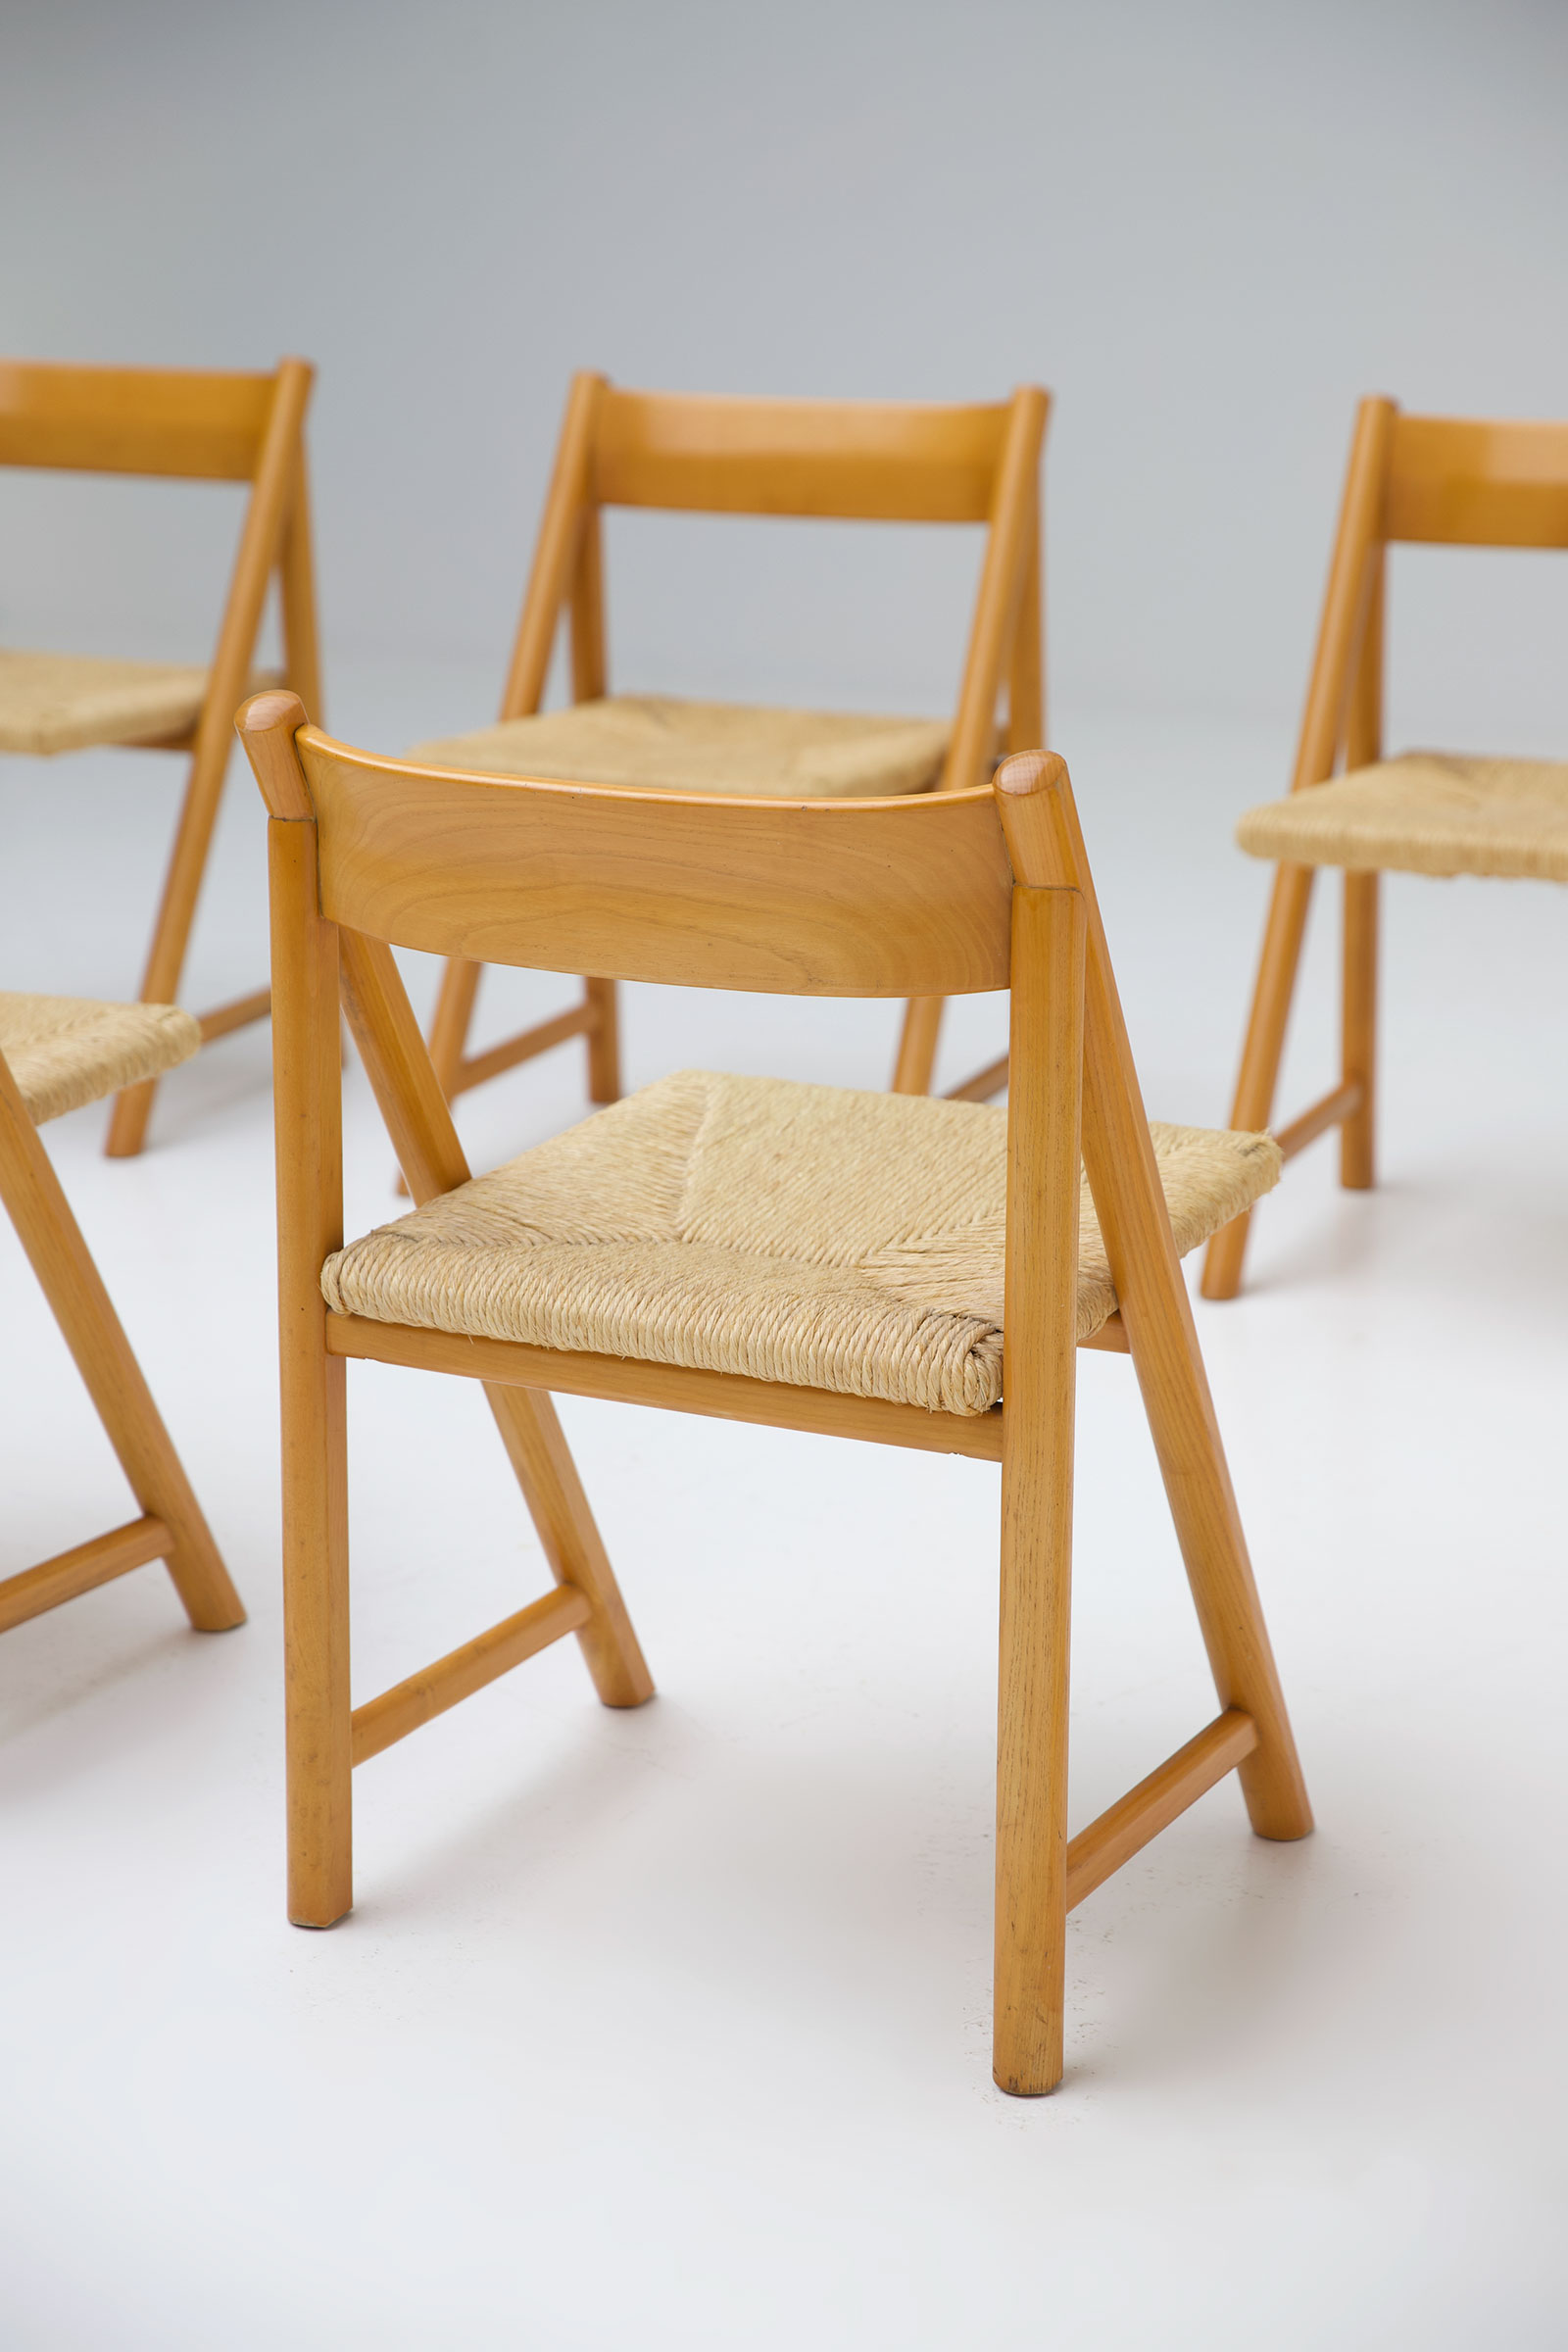 1960s Woven Cane Chairsimage 5